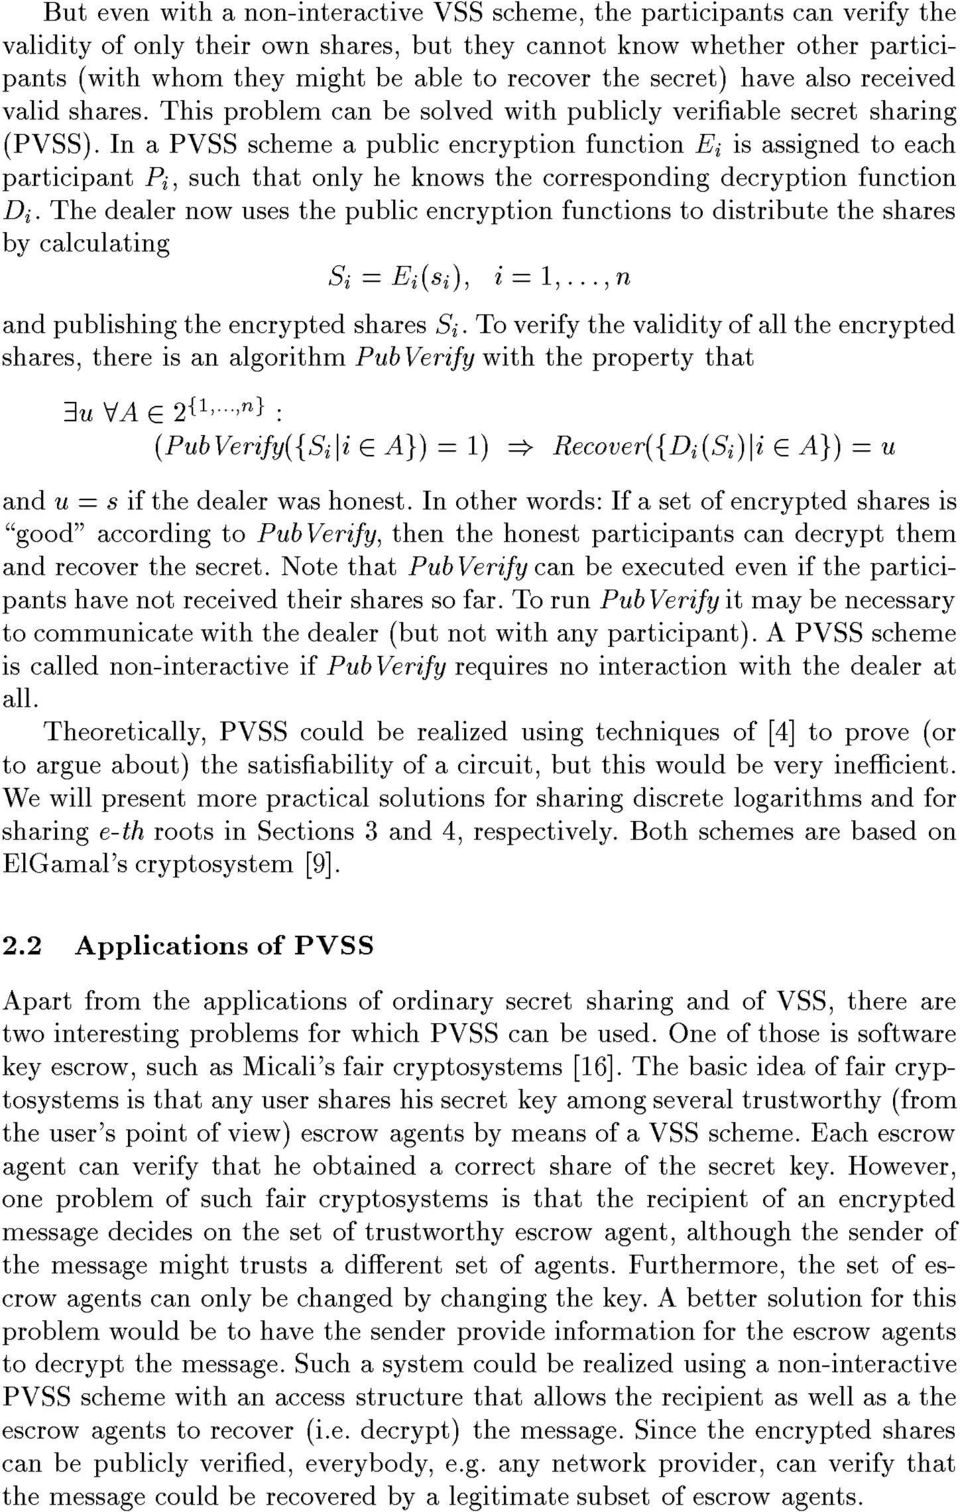 In a PVSS scheme a public encryption function E i is assigned to each participant P i, such that only he knows the corresponding decryption function D i.